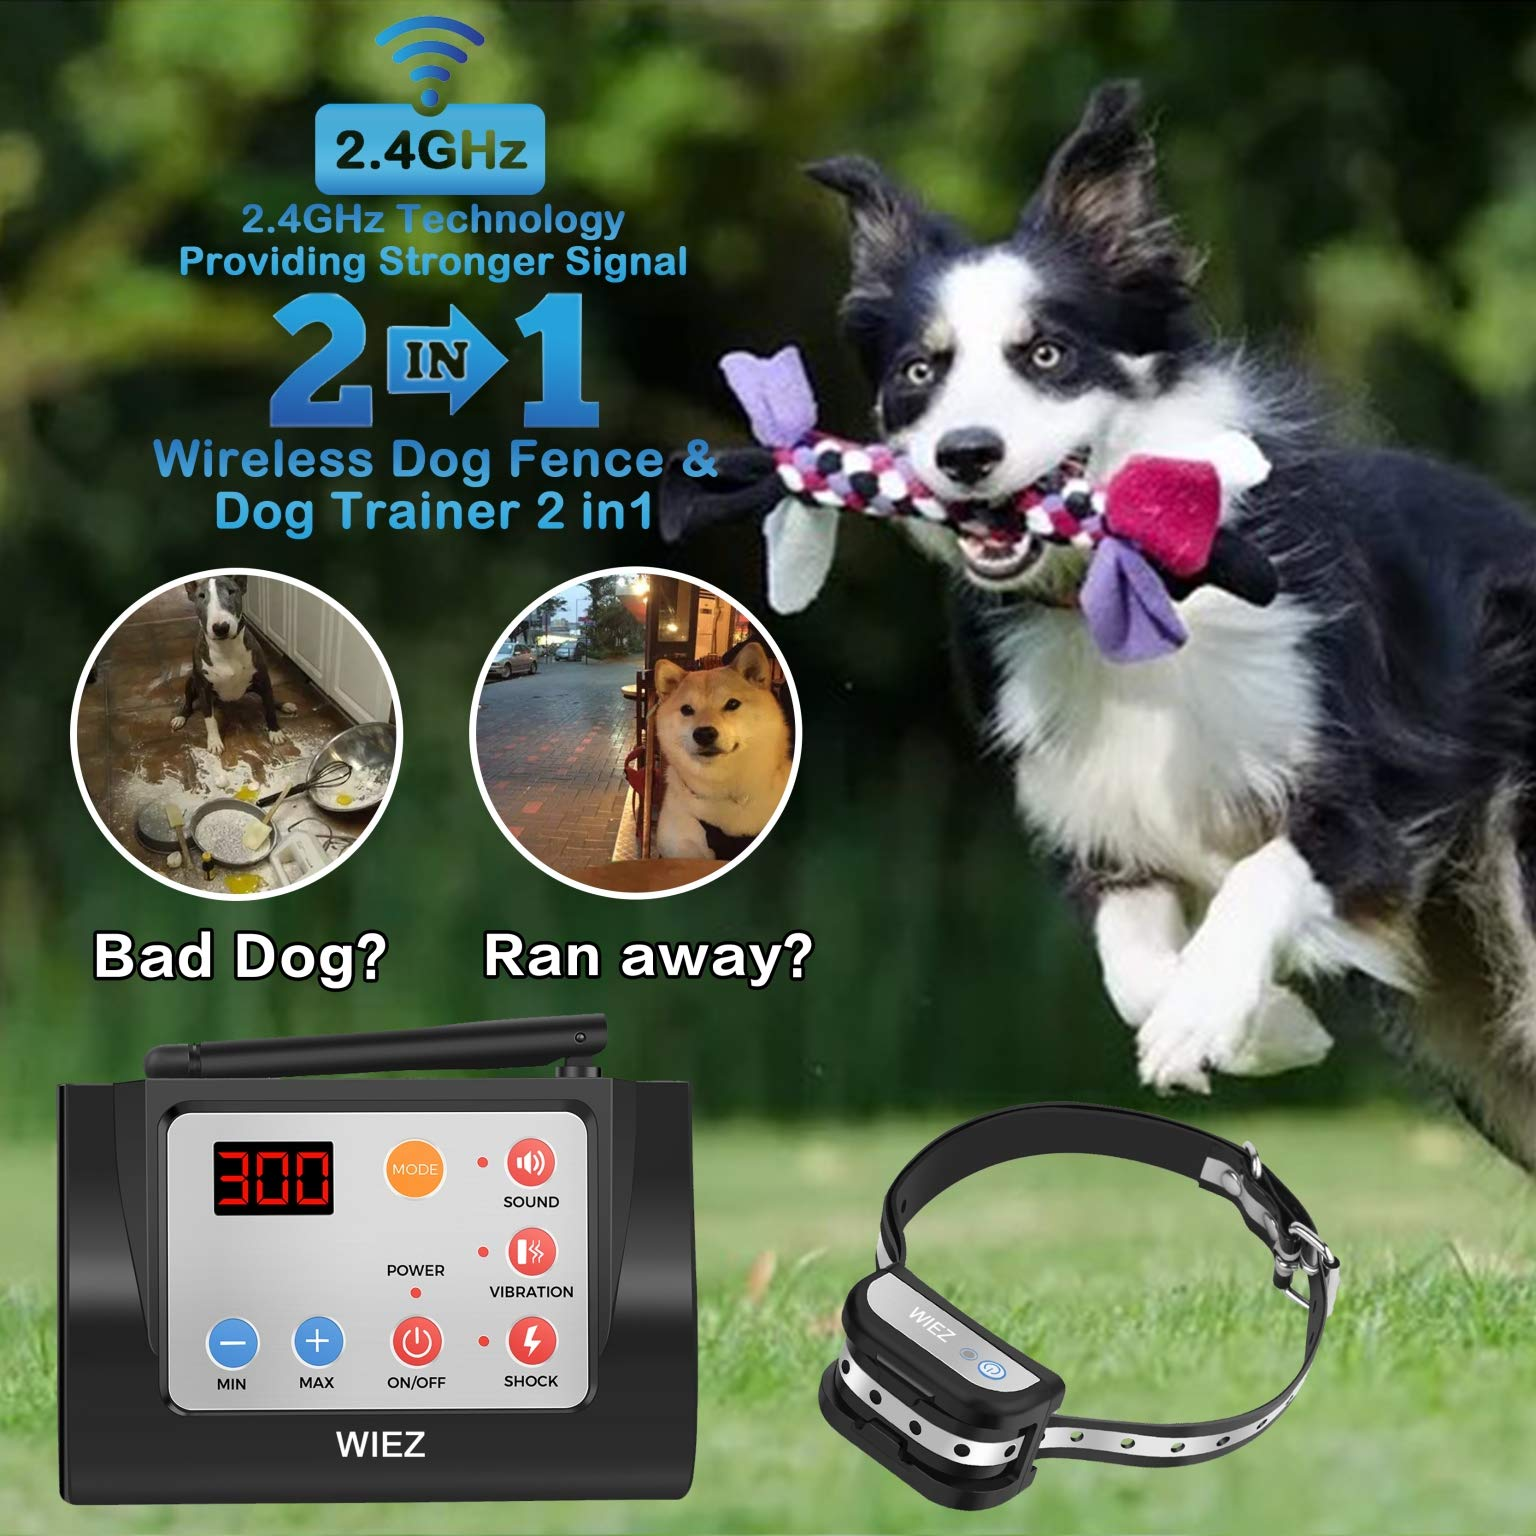 WIEZ Dog Fence Wireless & Training Collar Outdoor 2-in-1, Electric Wireless Fence for Dogs w/Remote, Adjustable Range Control, Waterproof Reflective Stripe Collar, Harmless for All Dogs